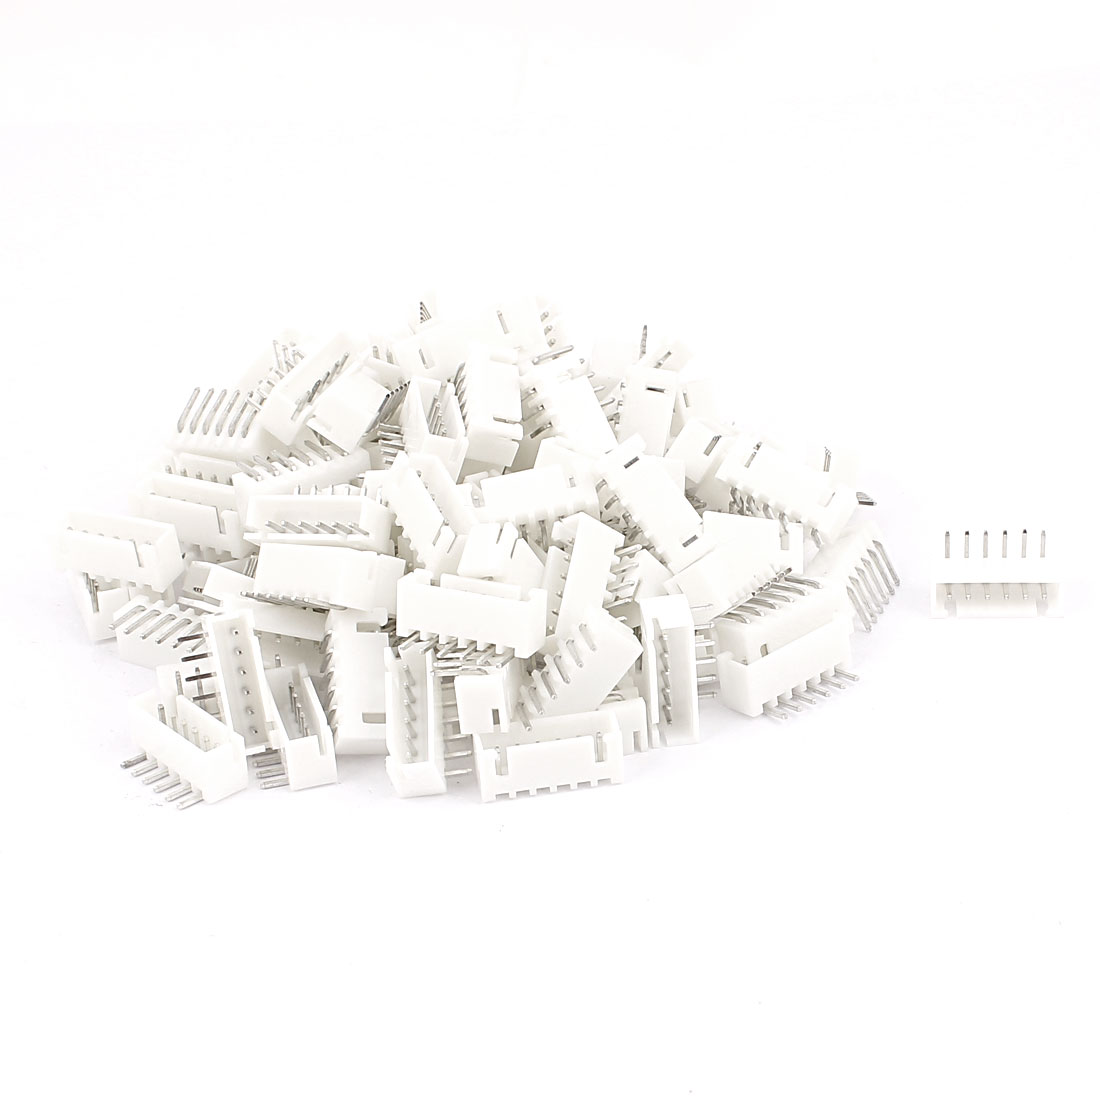 110pcs 1 8mm Pitch Right Angle Male 6 Pins Jst Header